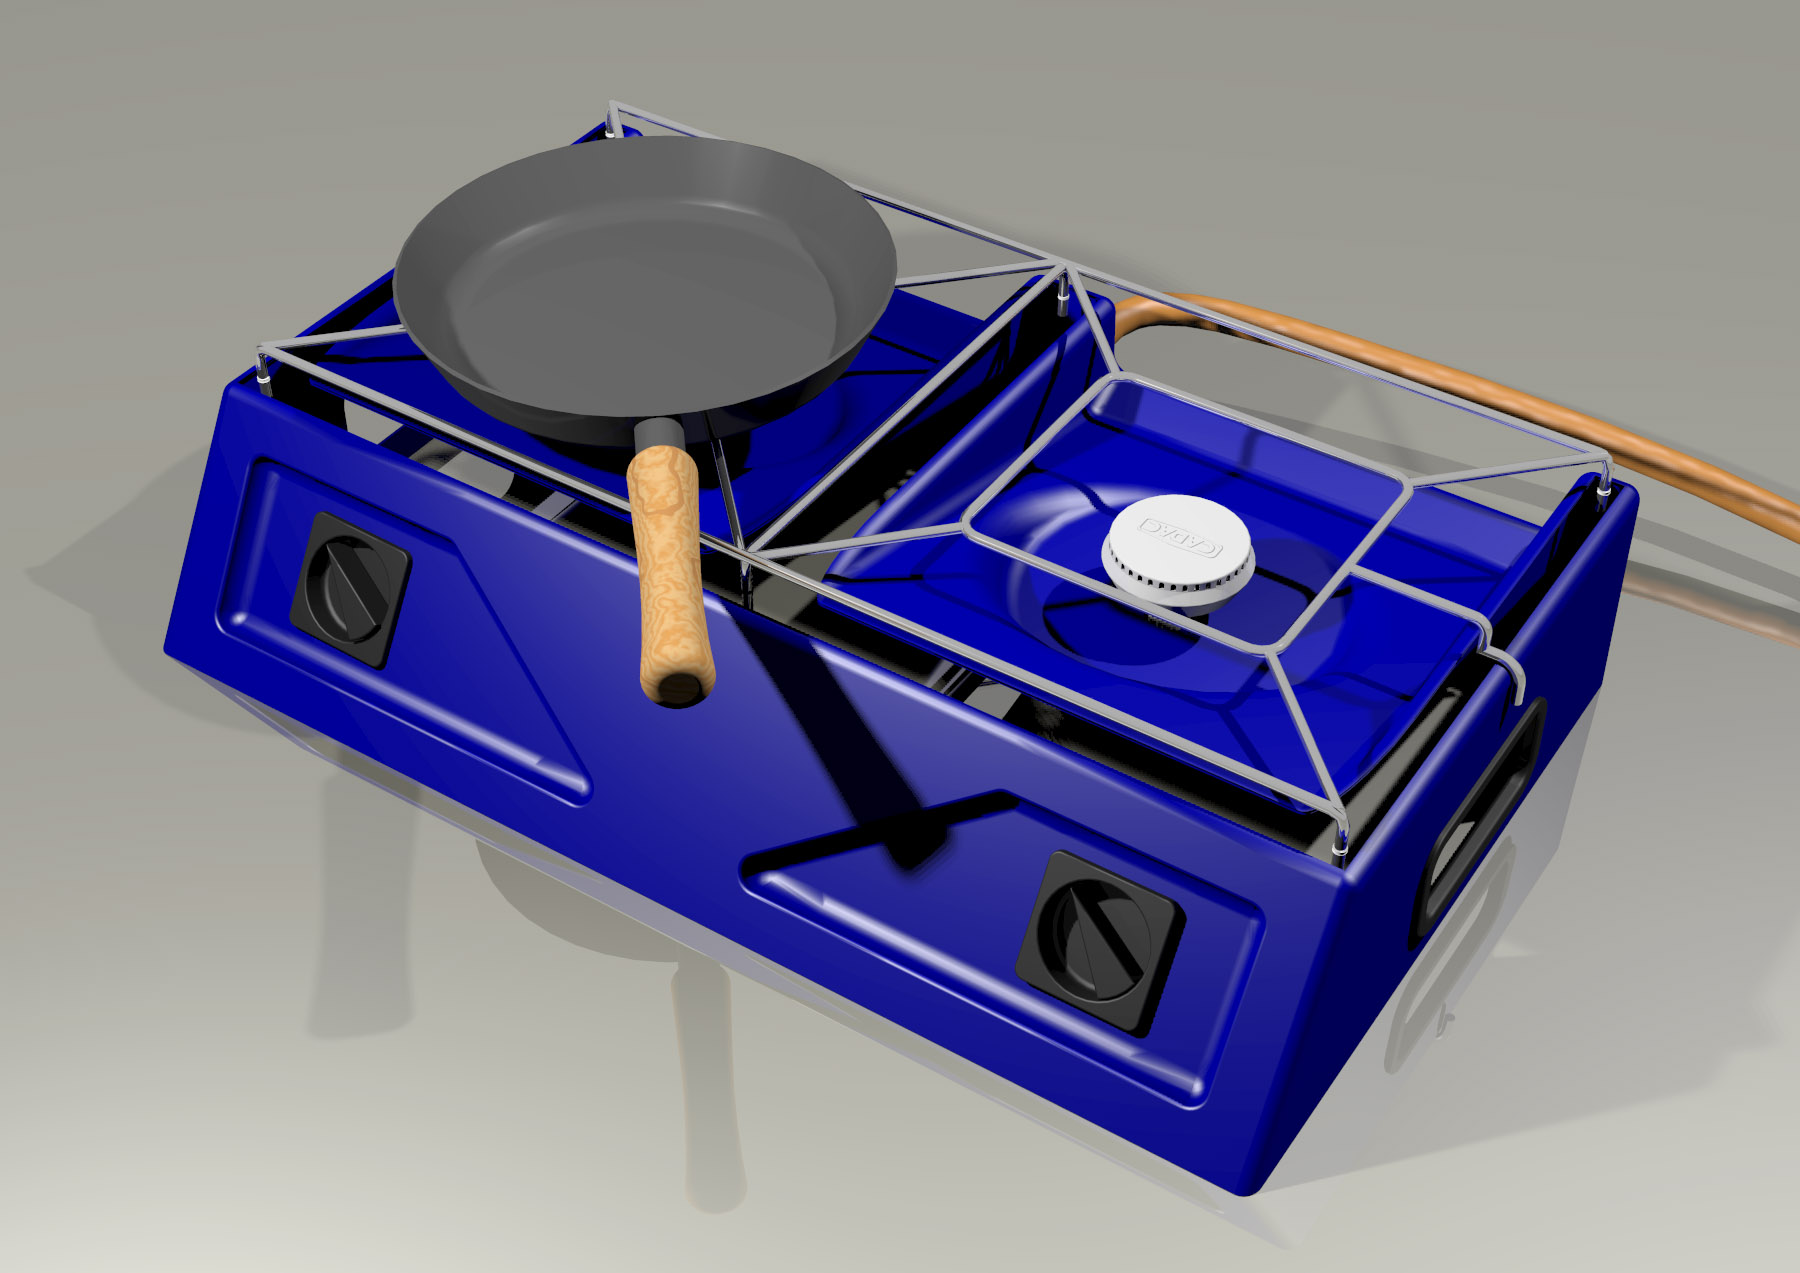 Cadac Gas Stove Design by Jason Hoffman at Coroflot.com